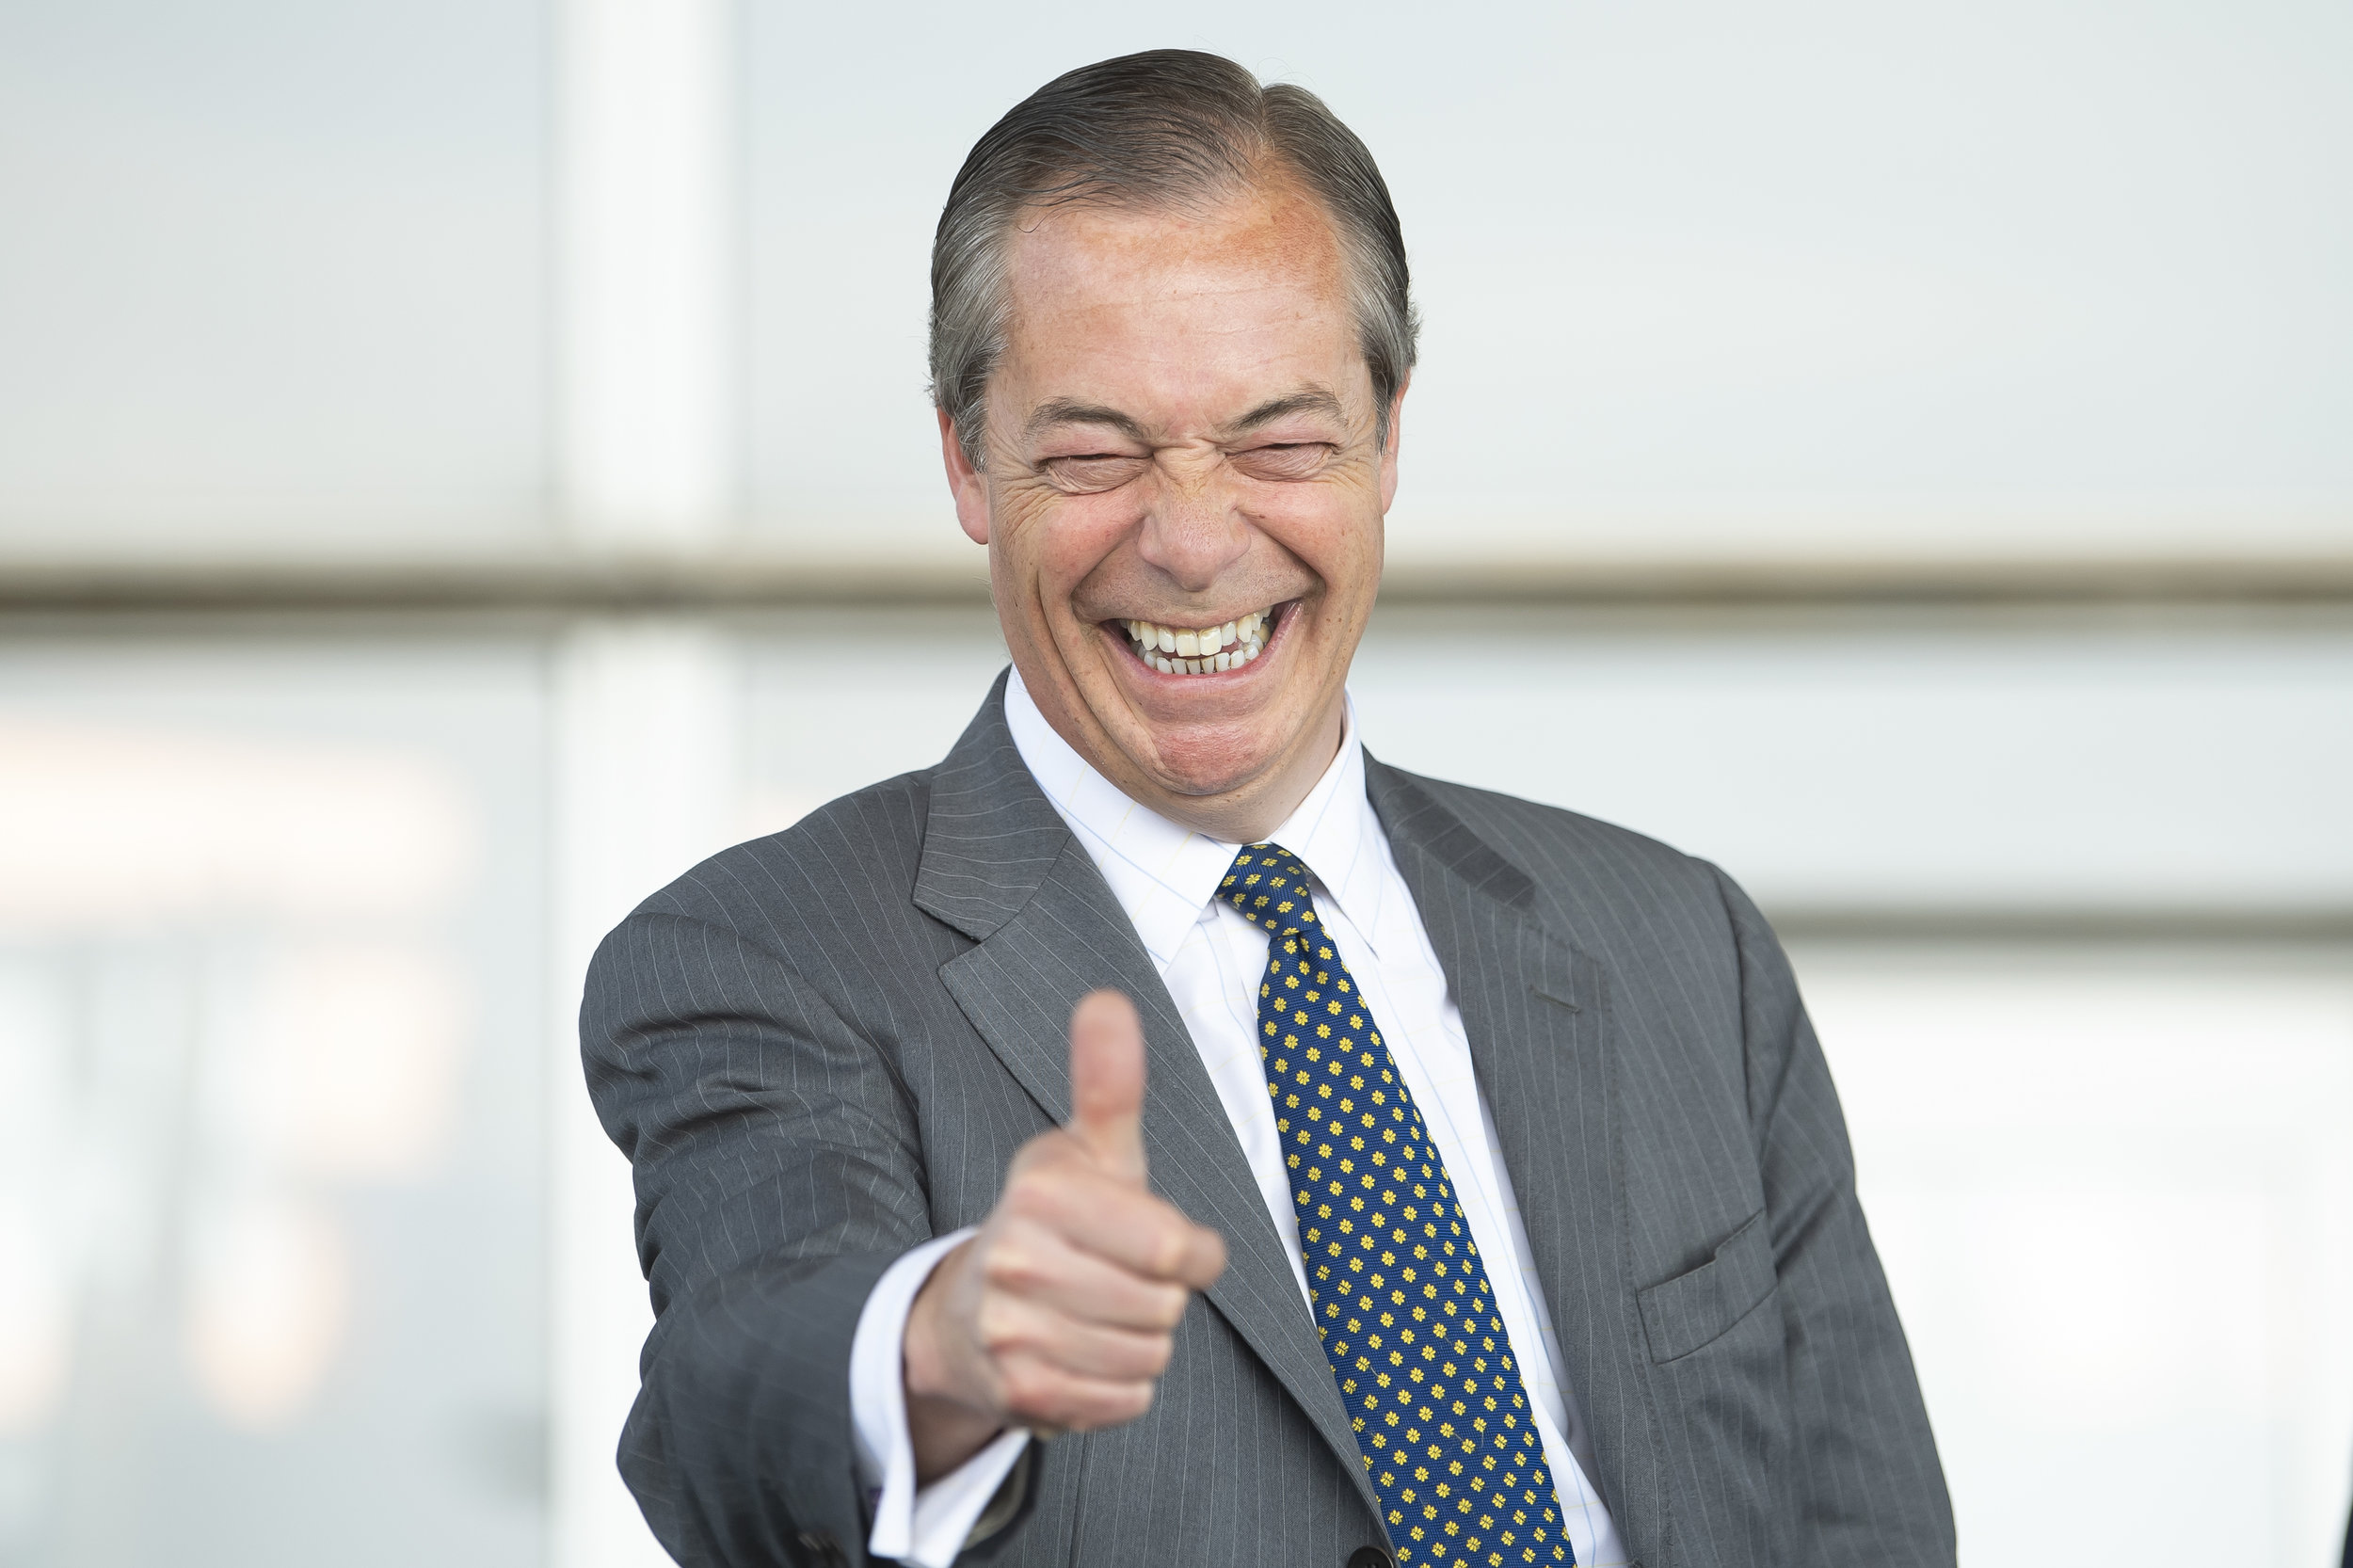 CARDIFF, WALES - MAY 15: Leader of the Brexit Party Nigel Farage gives a thumbs up sign at the Senedd in Cardiff Bay on May 15, 2019 in Cardiff, Wales. Nigel Farage, leader of the Brexit Party and former leader of the U.K. Independence Party, is campaigning for the Brexit Party ahead of this month's European Parliament elections. Despite voting to leave the European Union in 2016, Britain is braced to take part in the European Parliament elections on May 23. (Photo by Matthew Horwood/Getty Images)